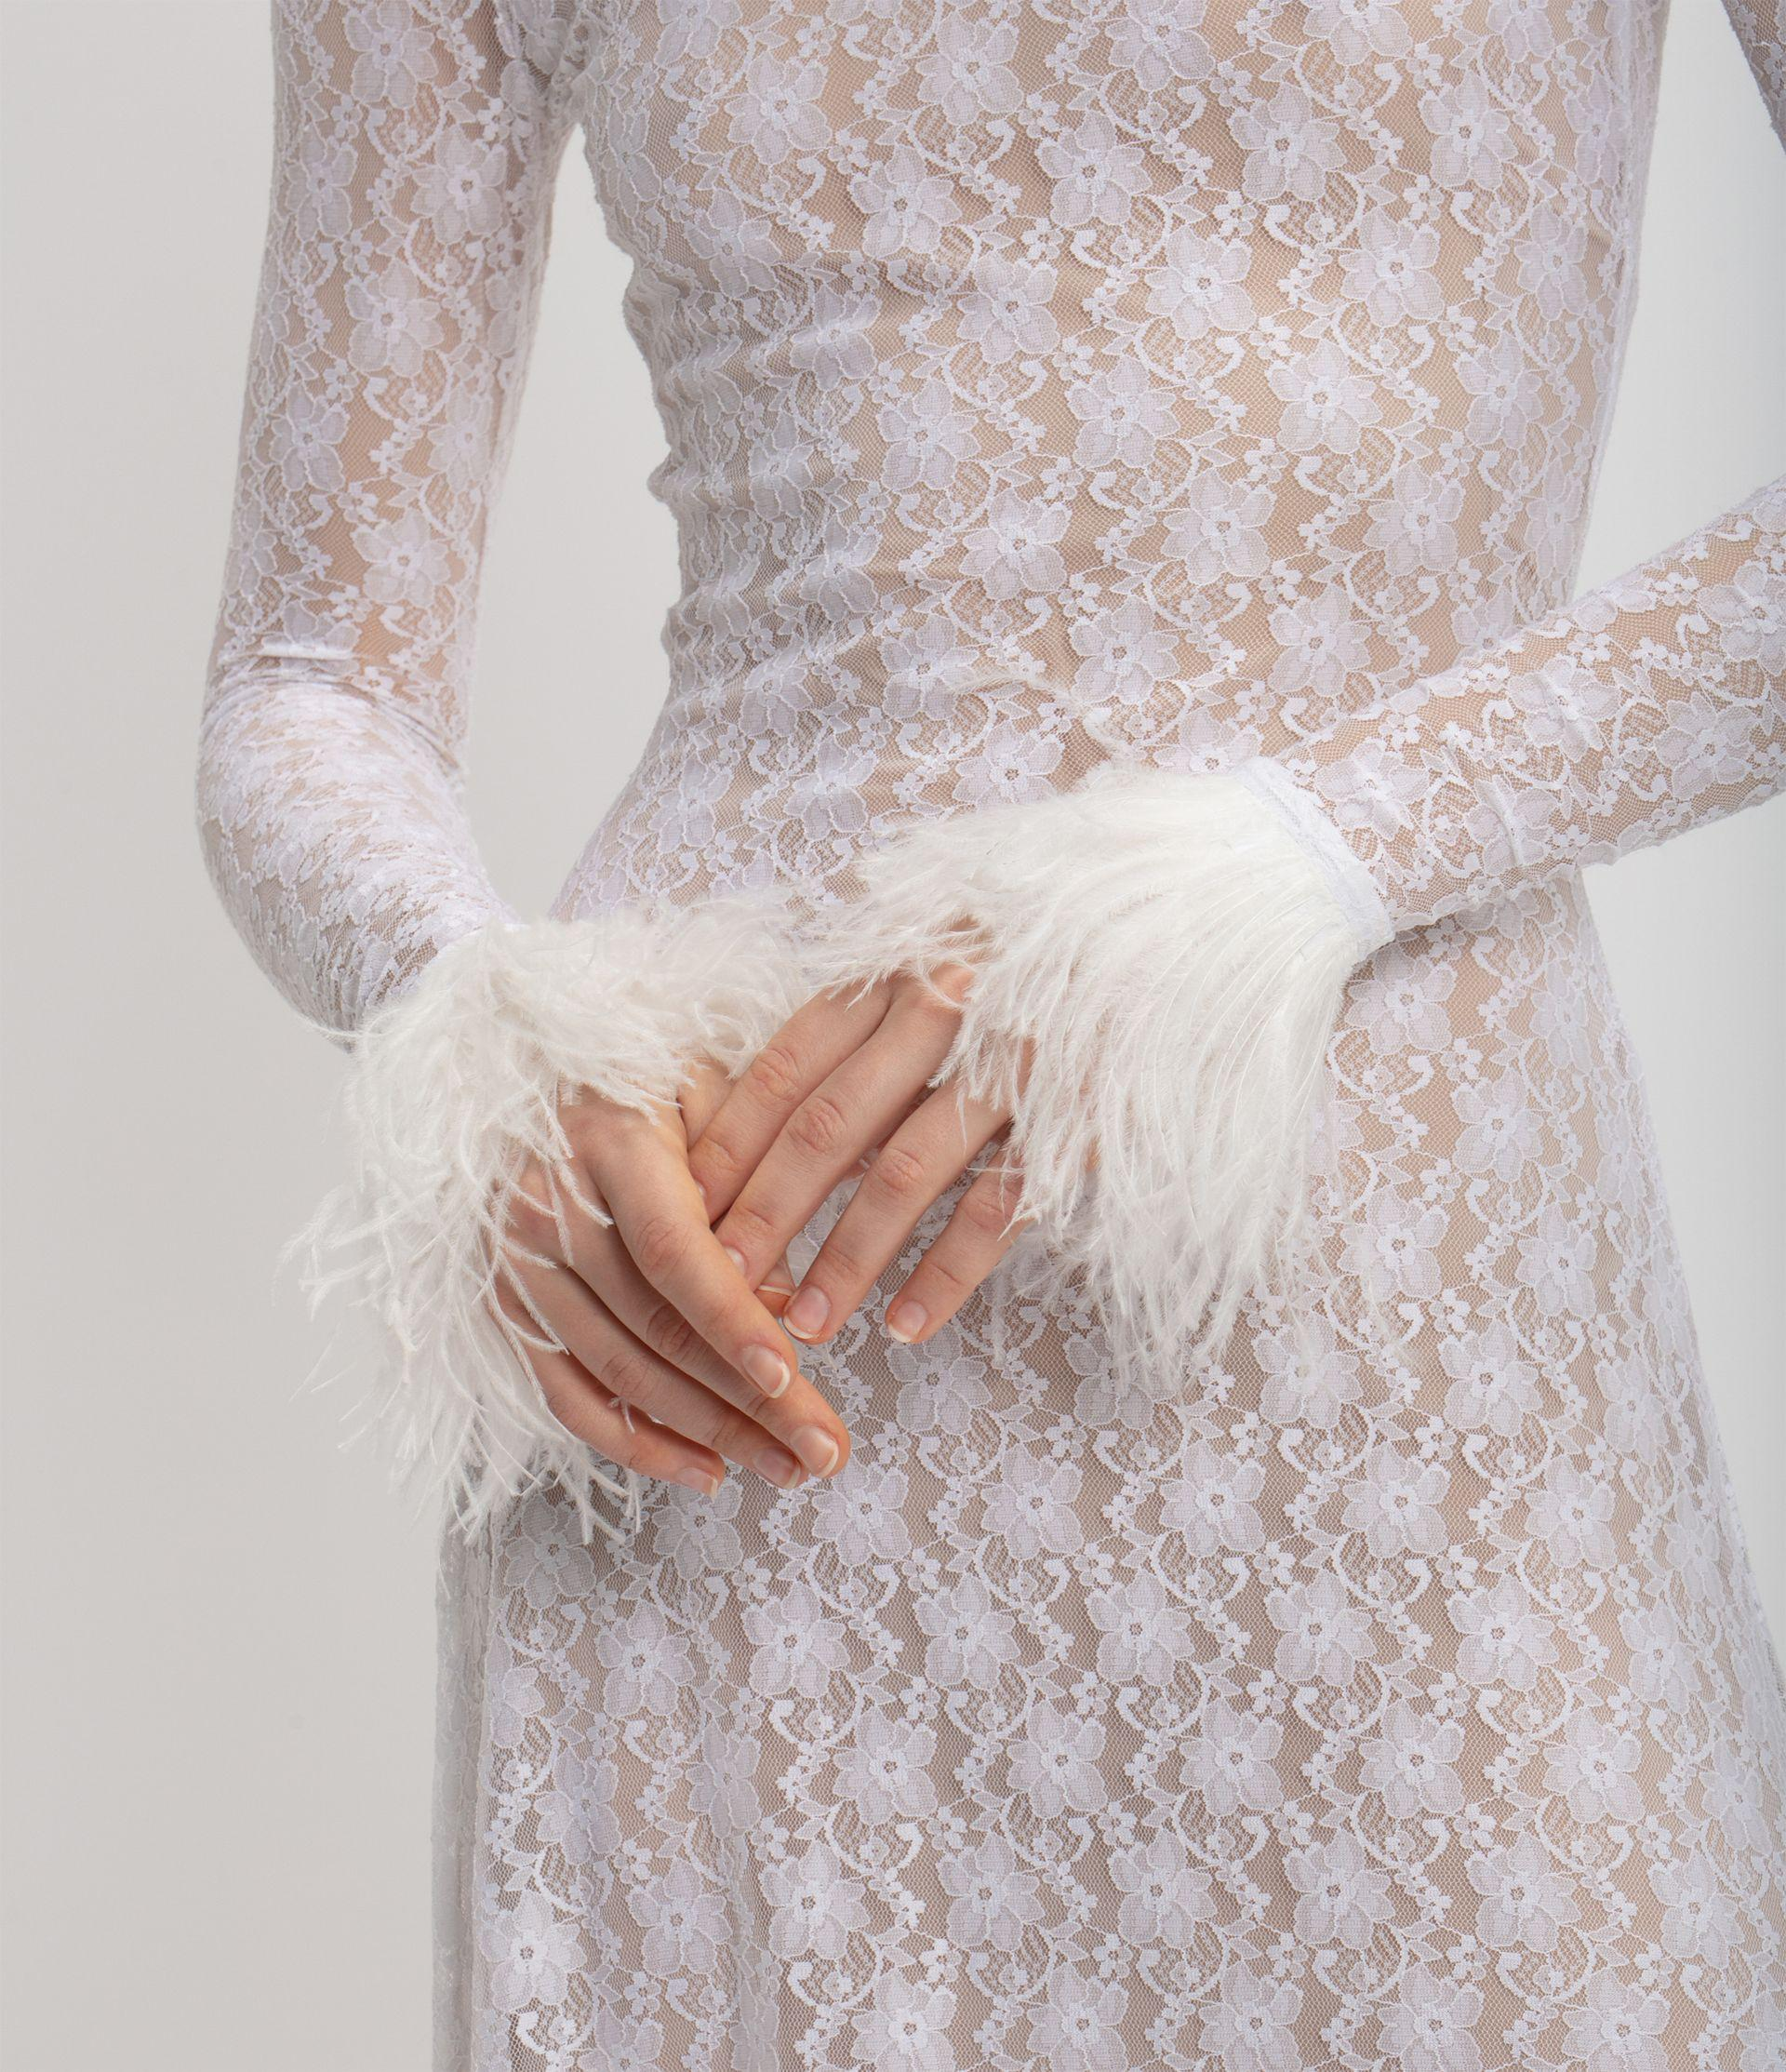 Christopher Kane Bridal: Lace Gown 5